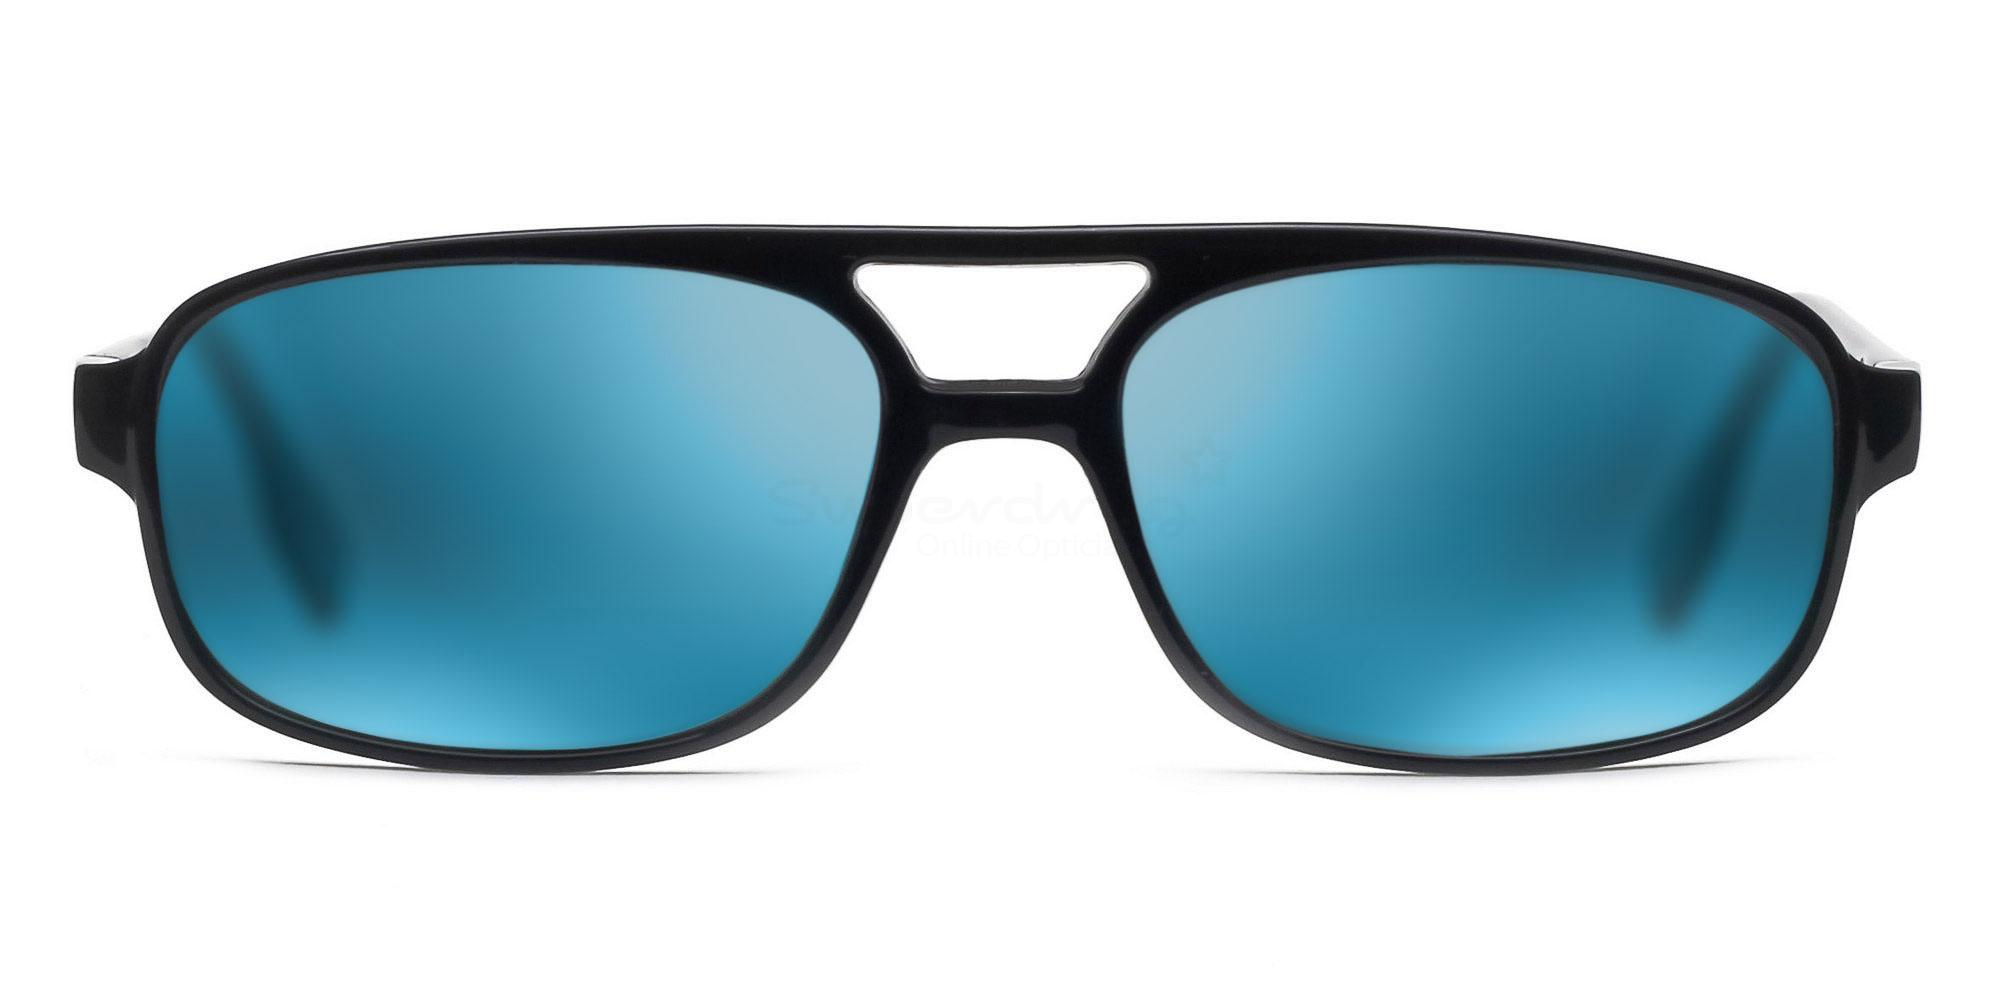 C01 Polarized Grey with Green Mirror P2395 - Black (Mirrored Polarized) , Neon